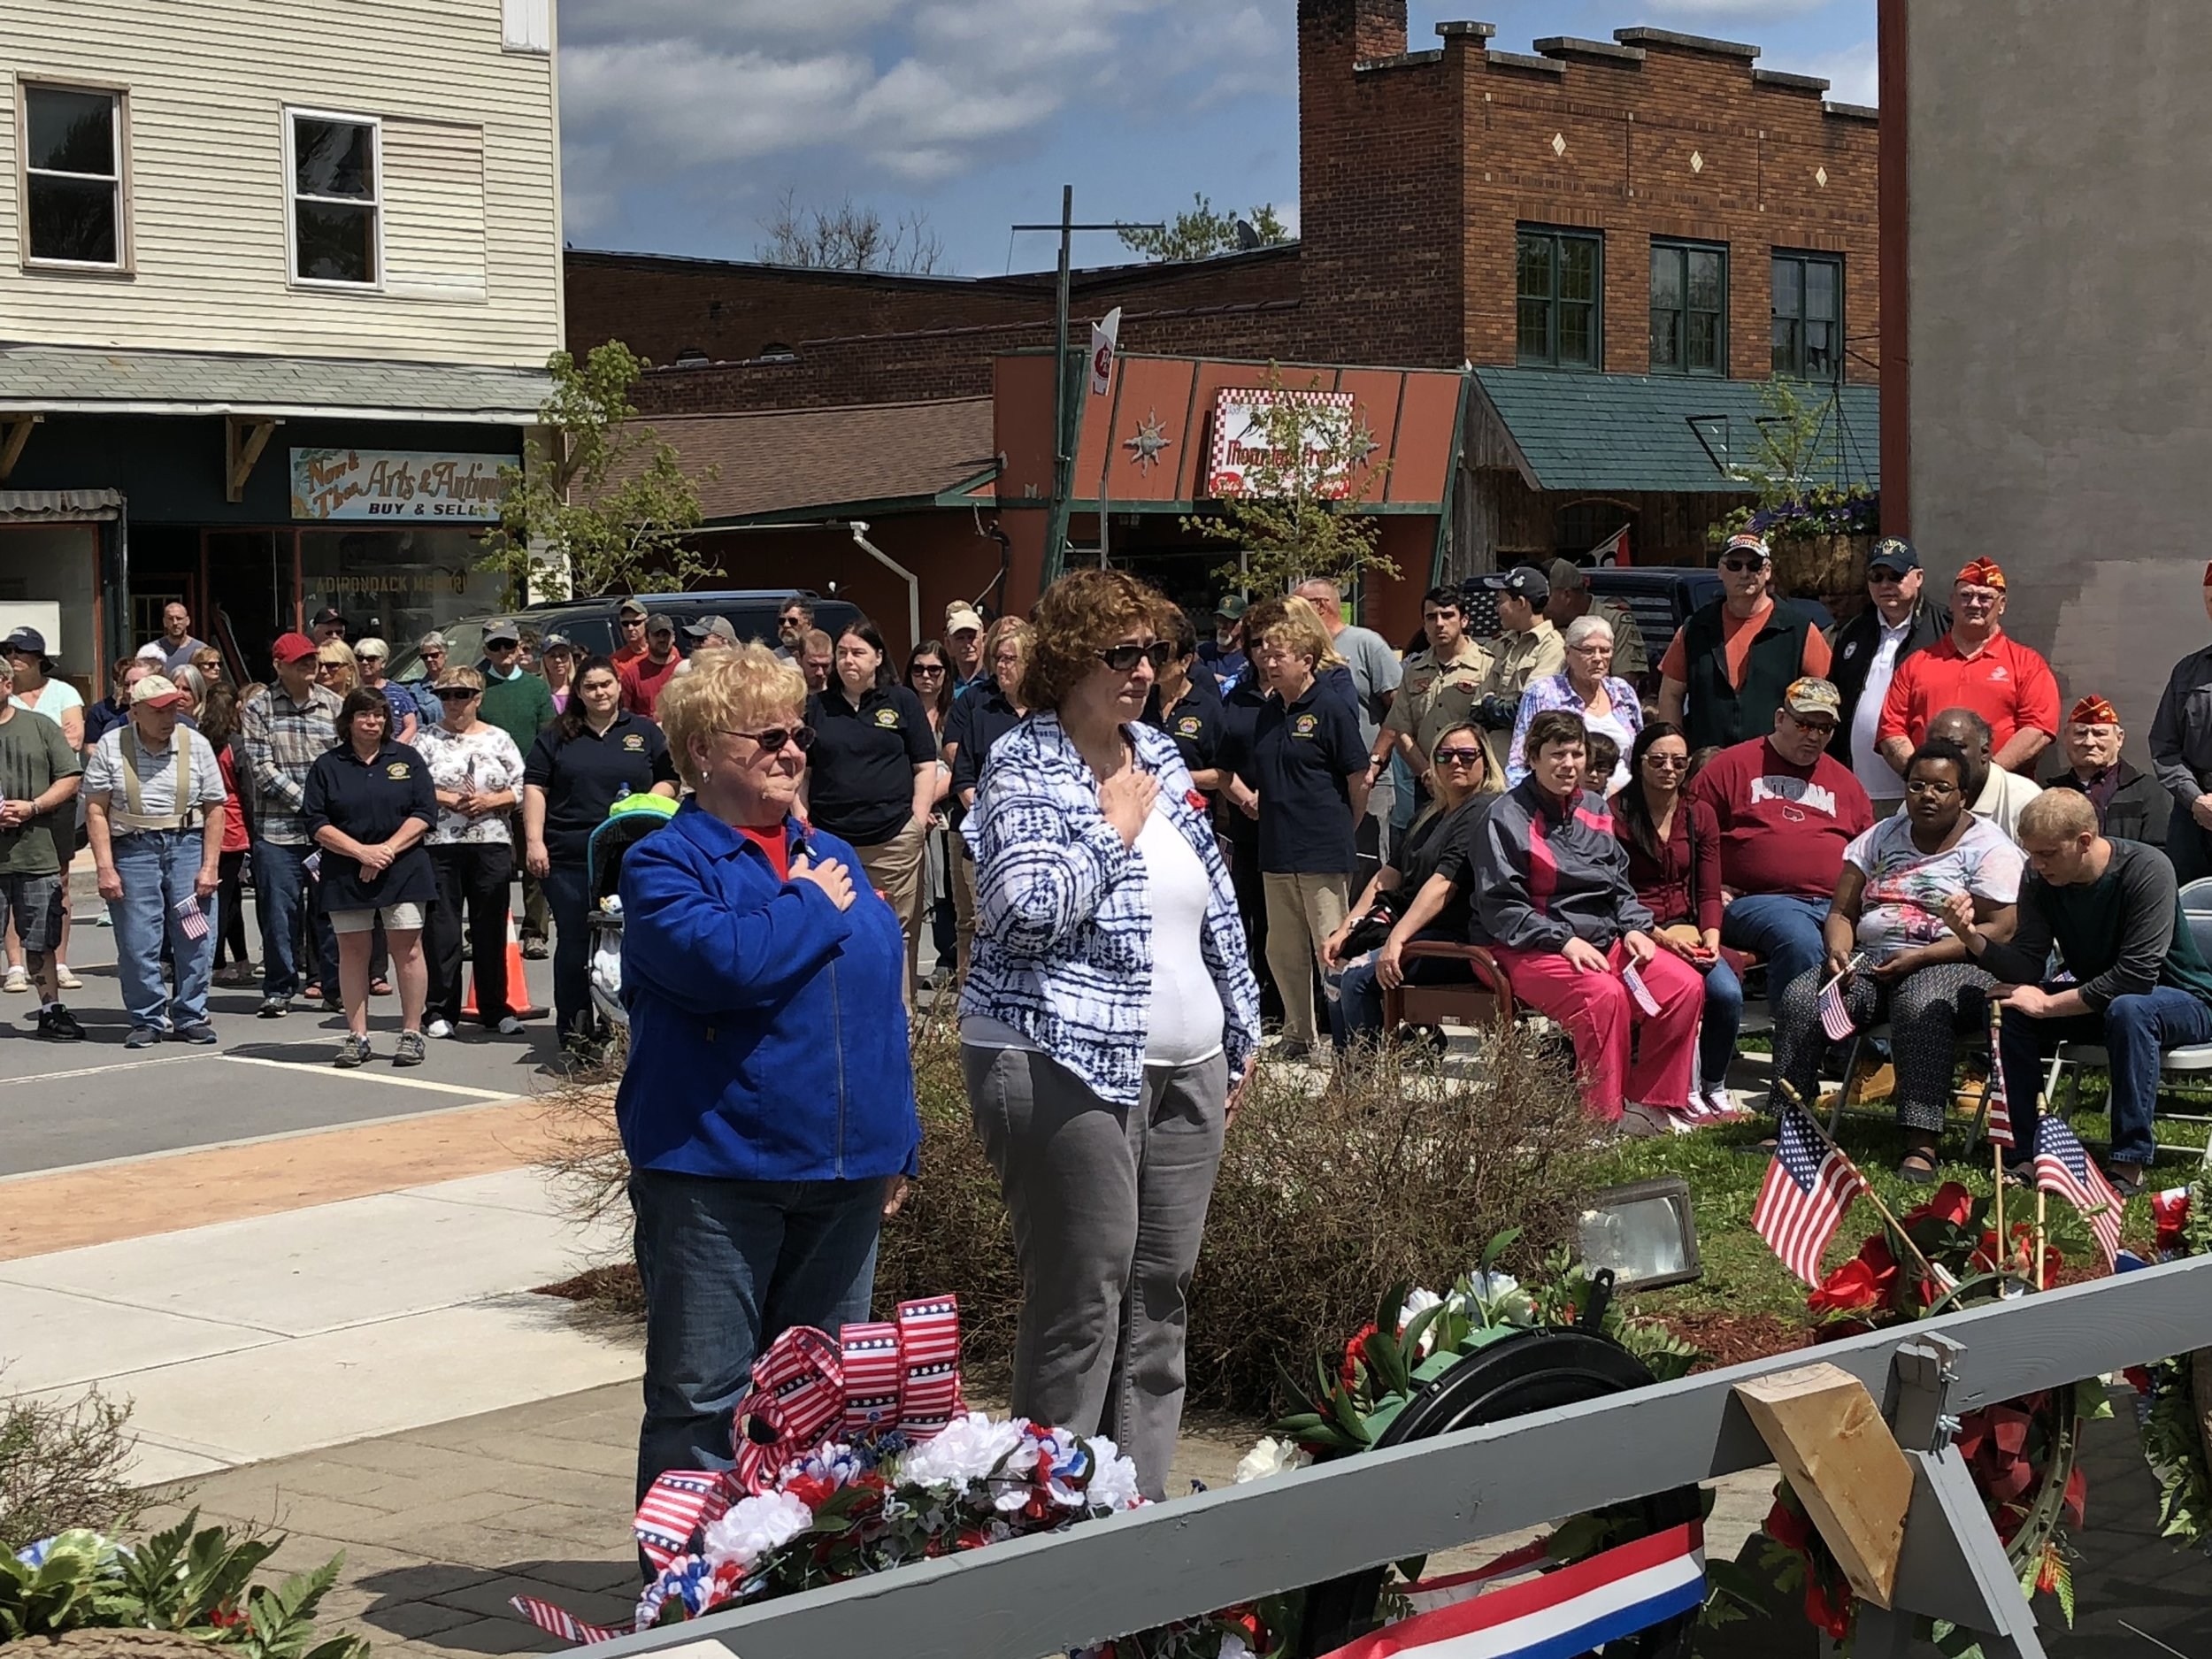 Joanne Wilber and Judy Wilburn laid a wreath on behalf of the Woodmen Lodge.